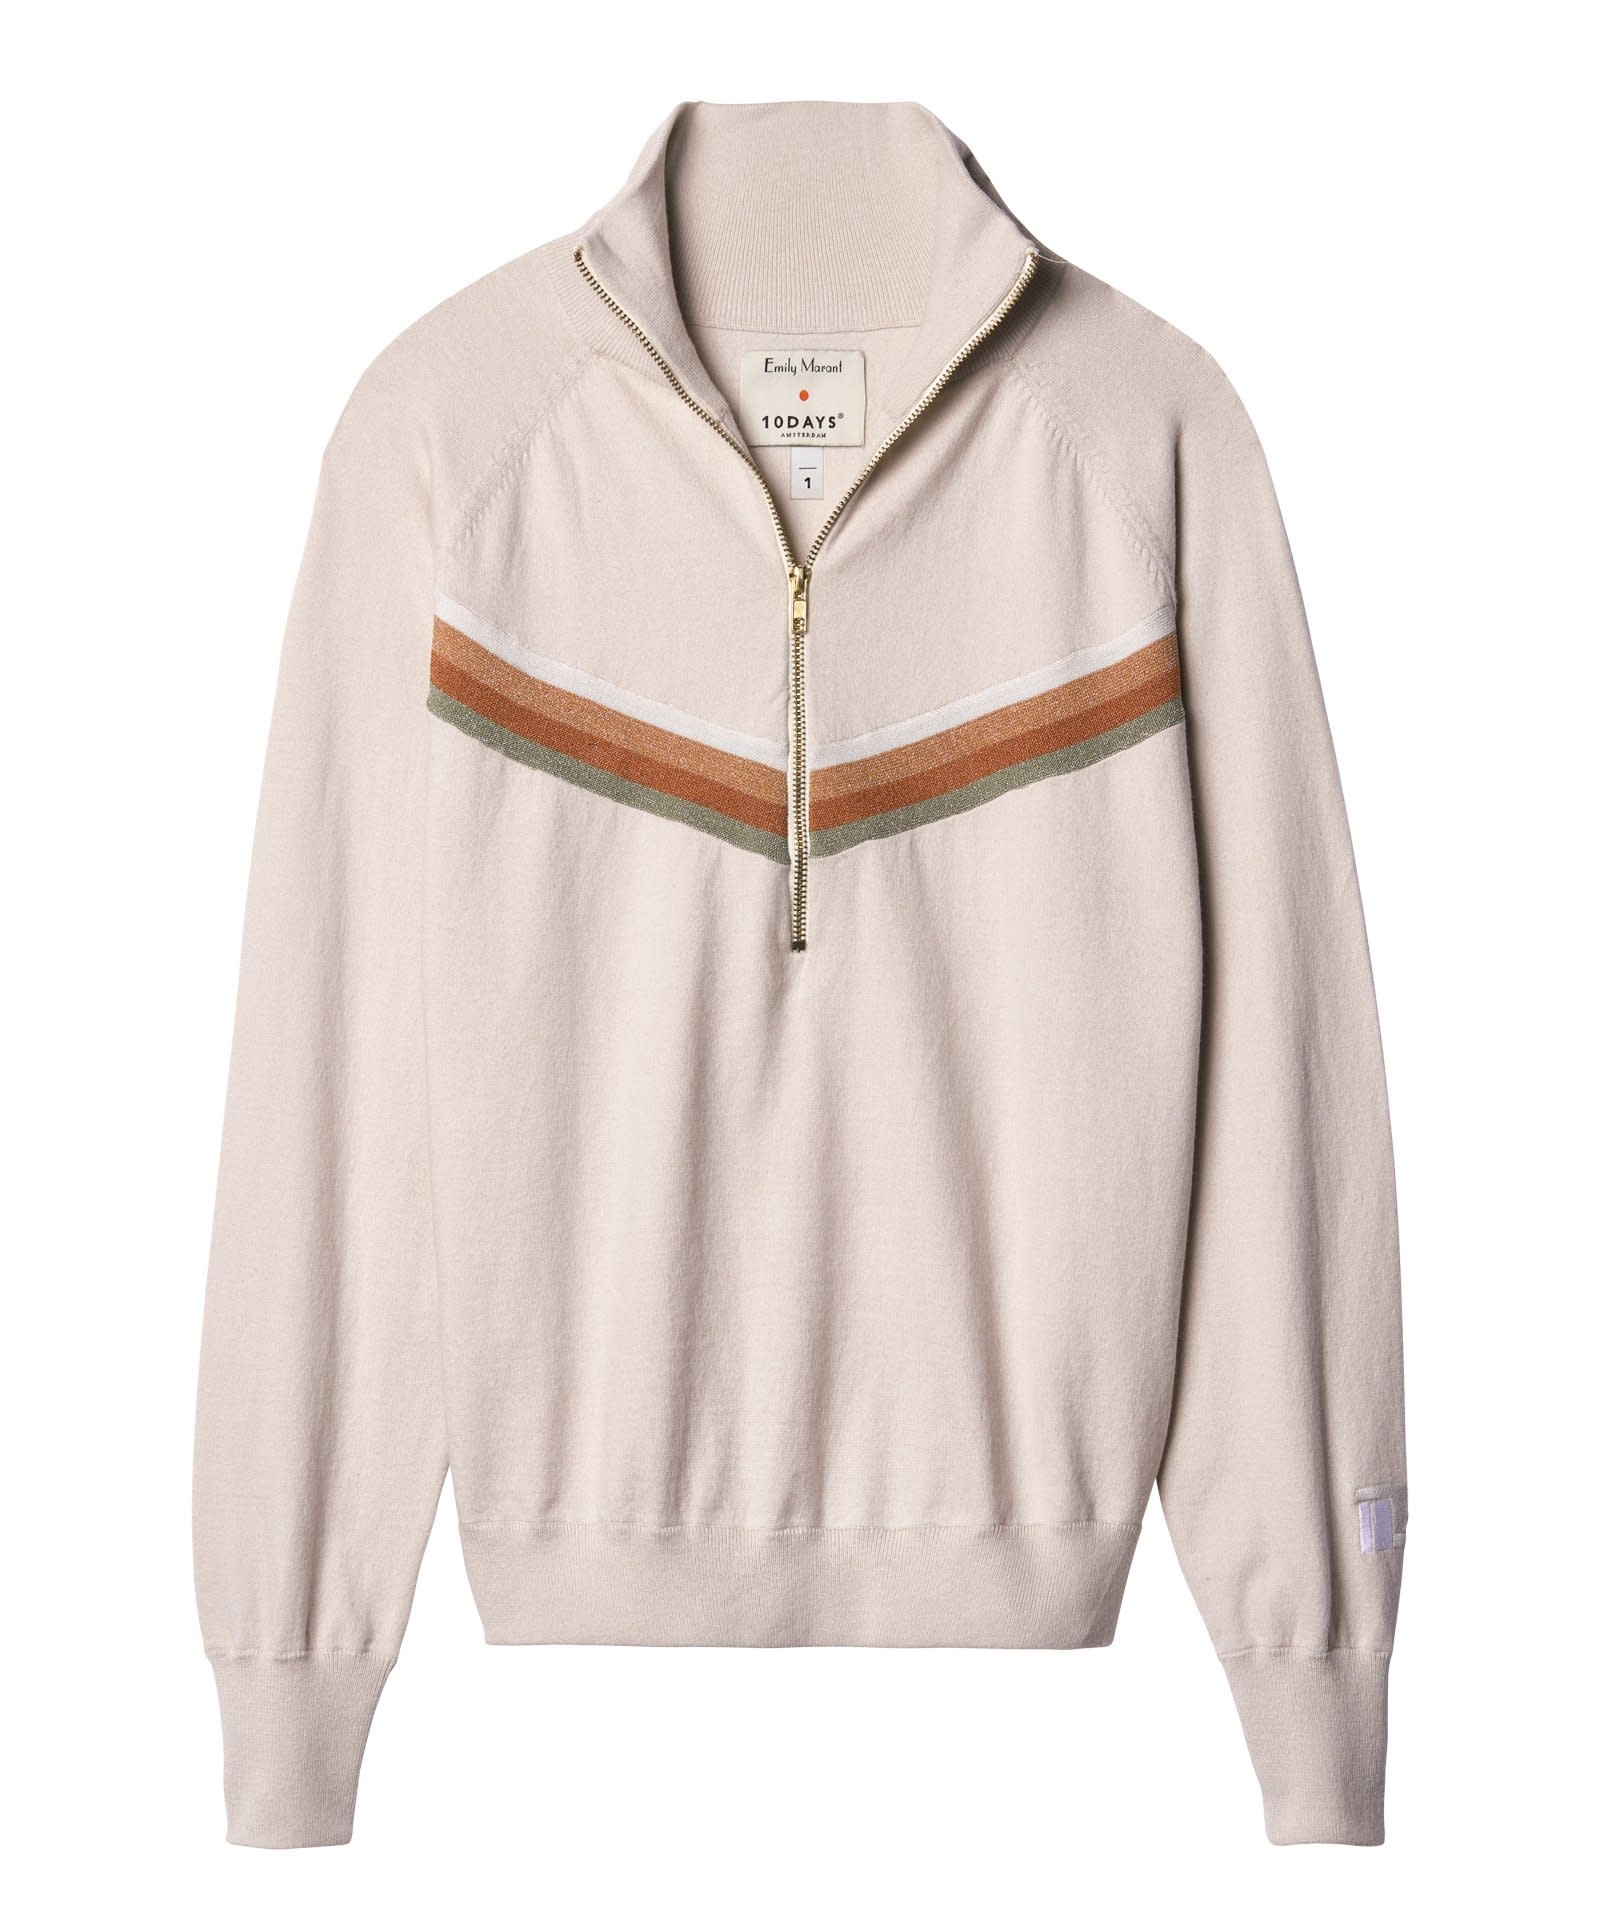 Sweater No9 Knitted Jumper Emily Marant-1